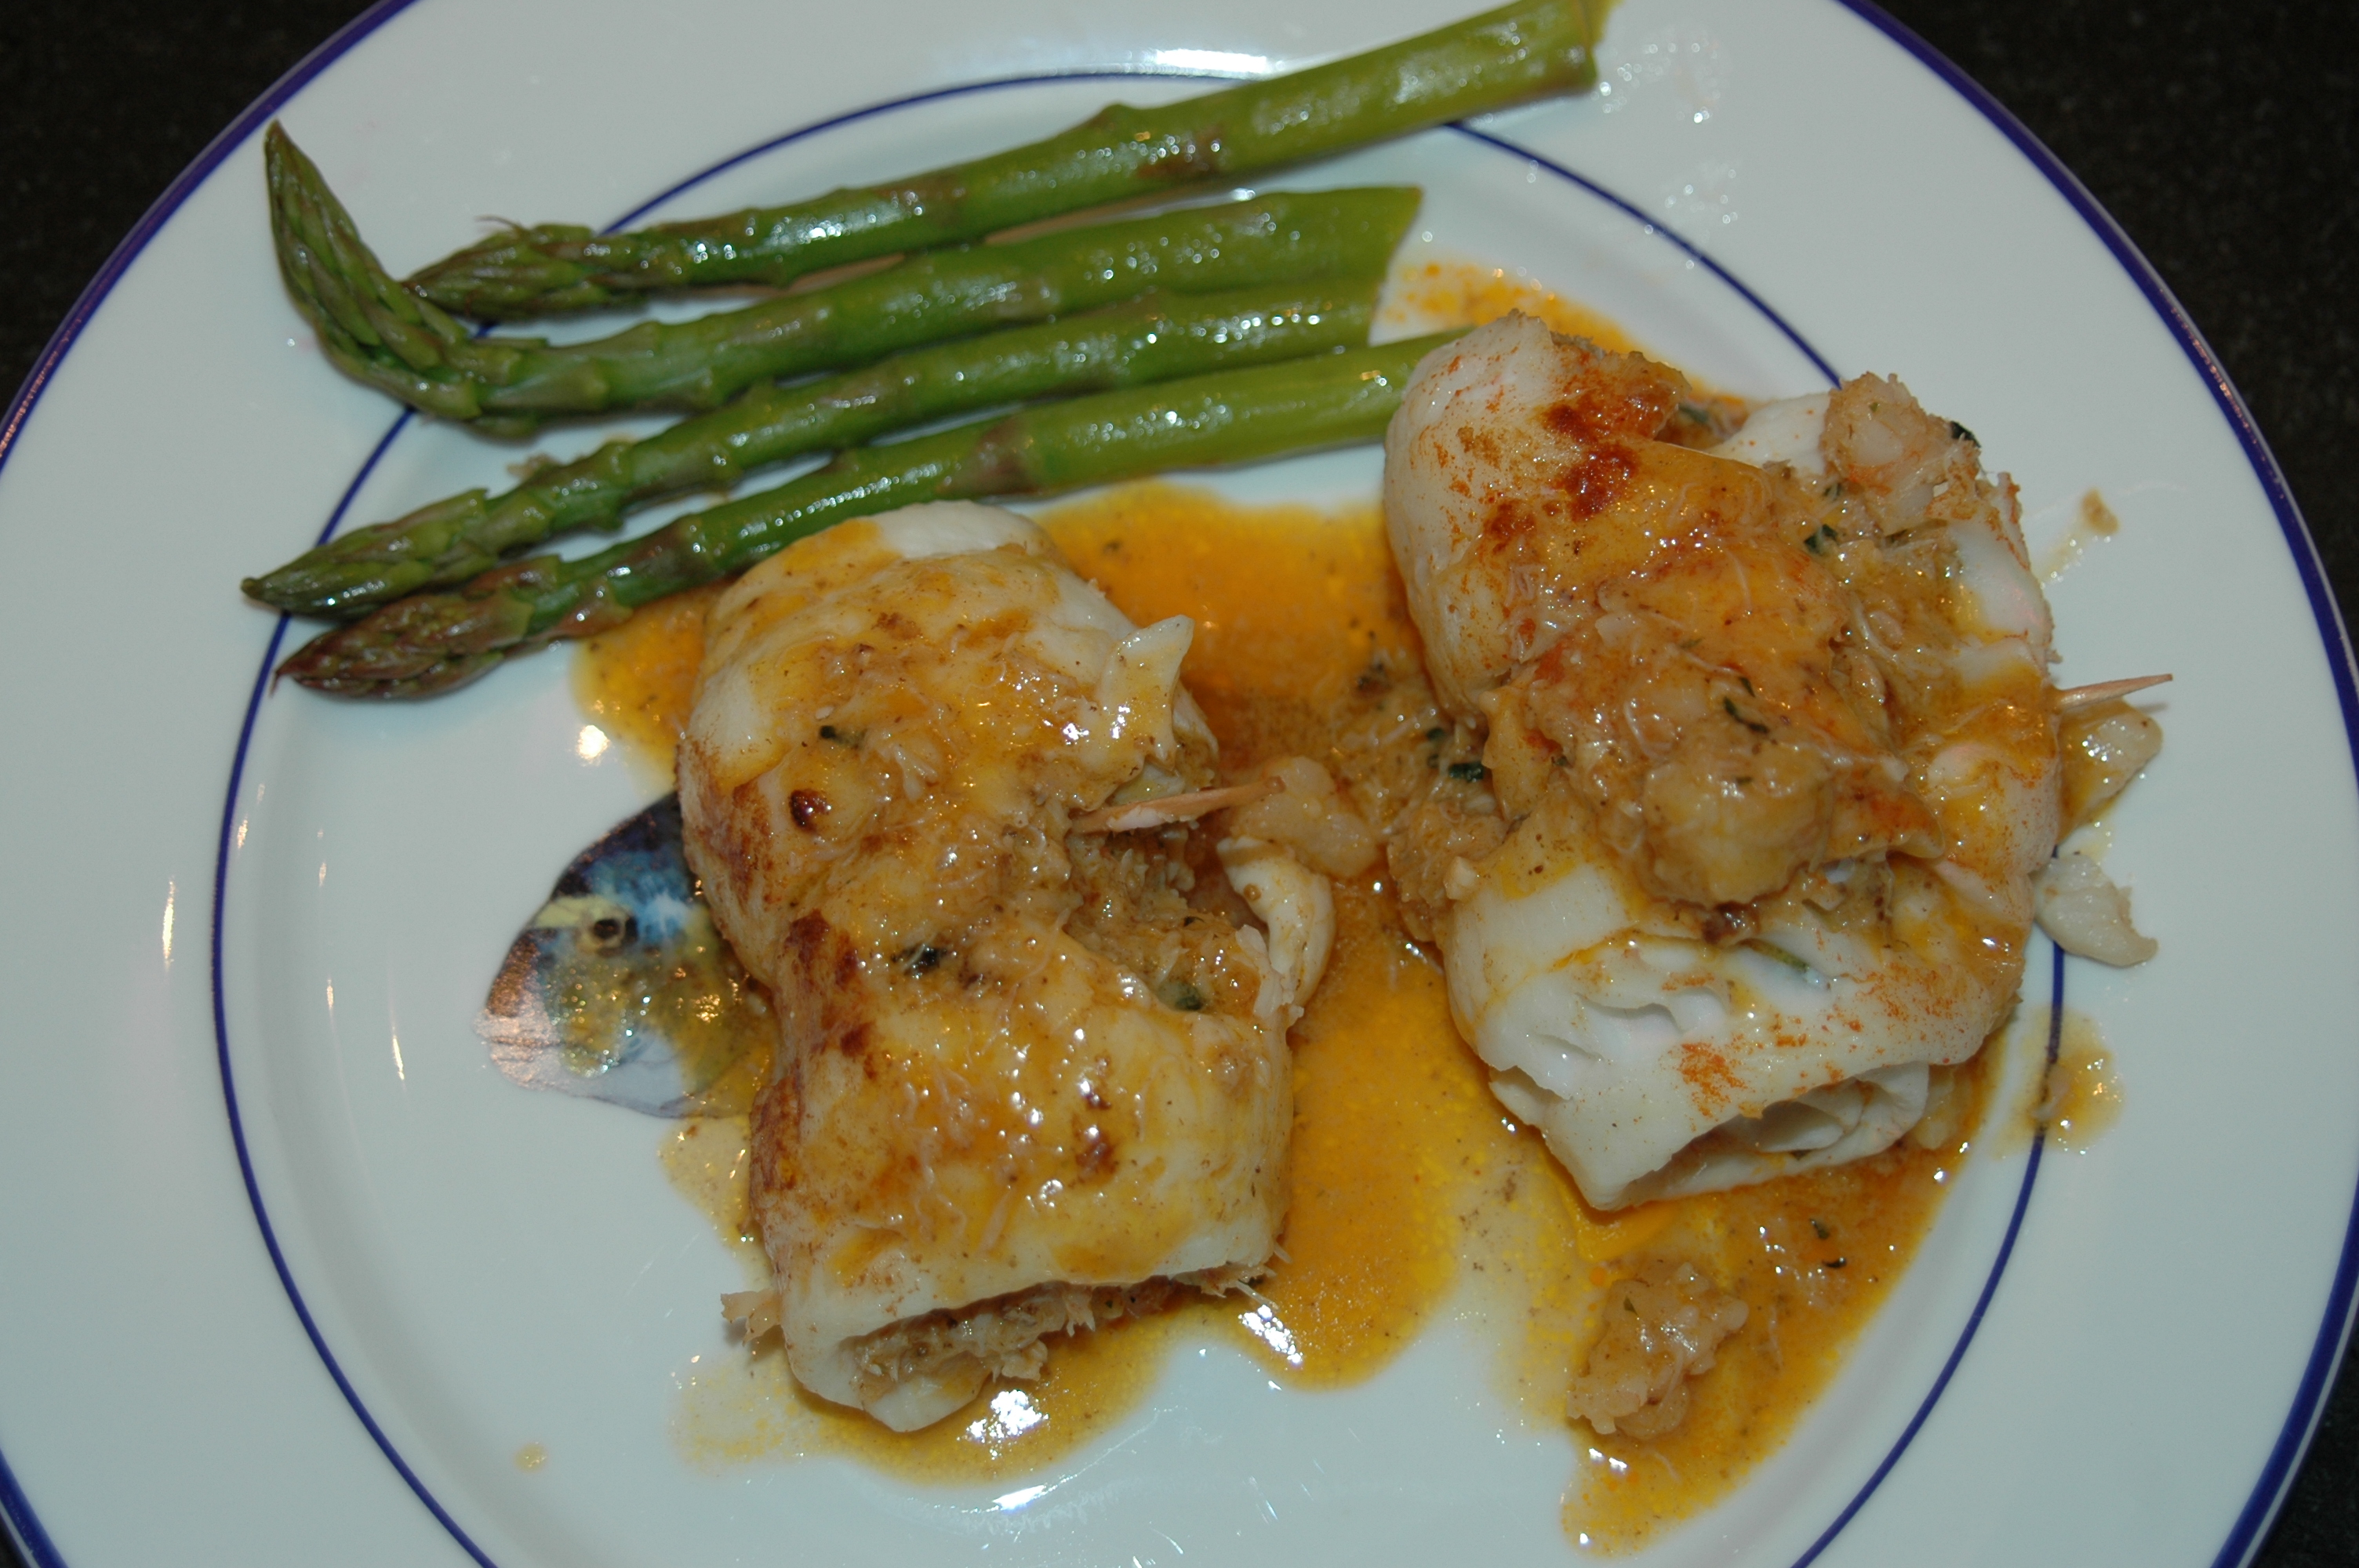 sole fish crab stuffed sole fillet jpg crab stuffed sole stuffed sole ...